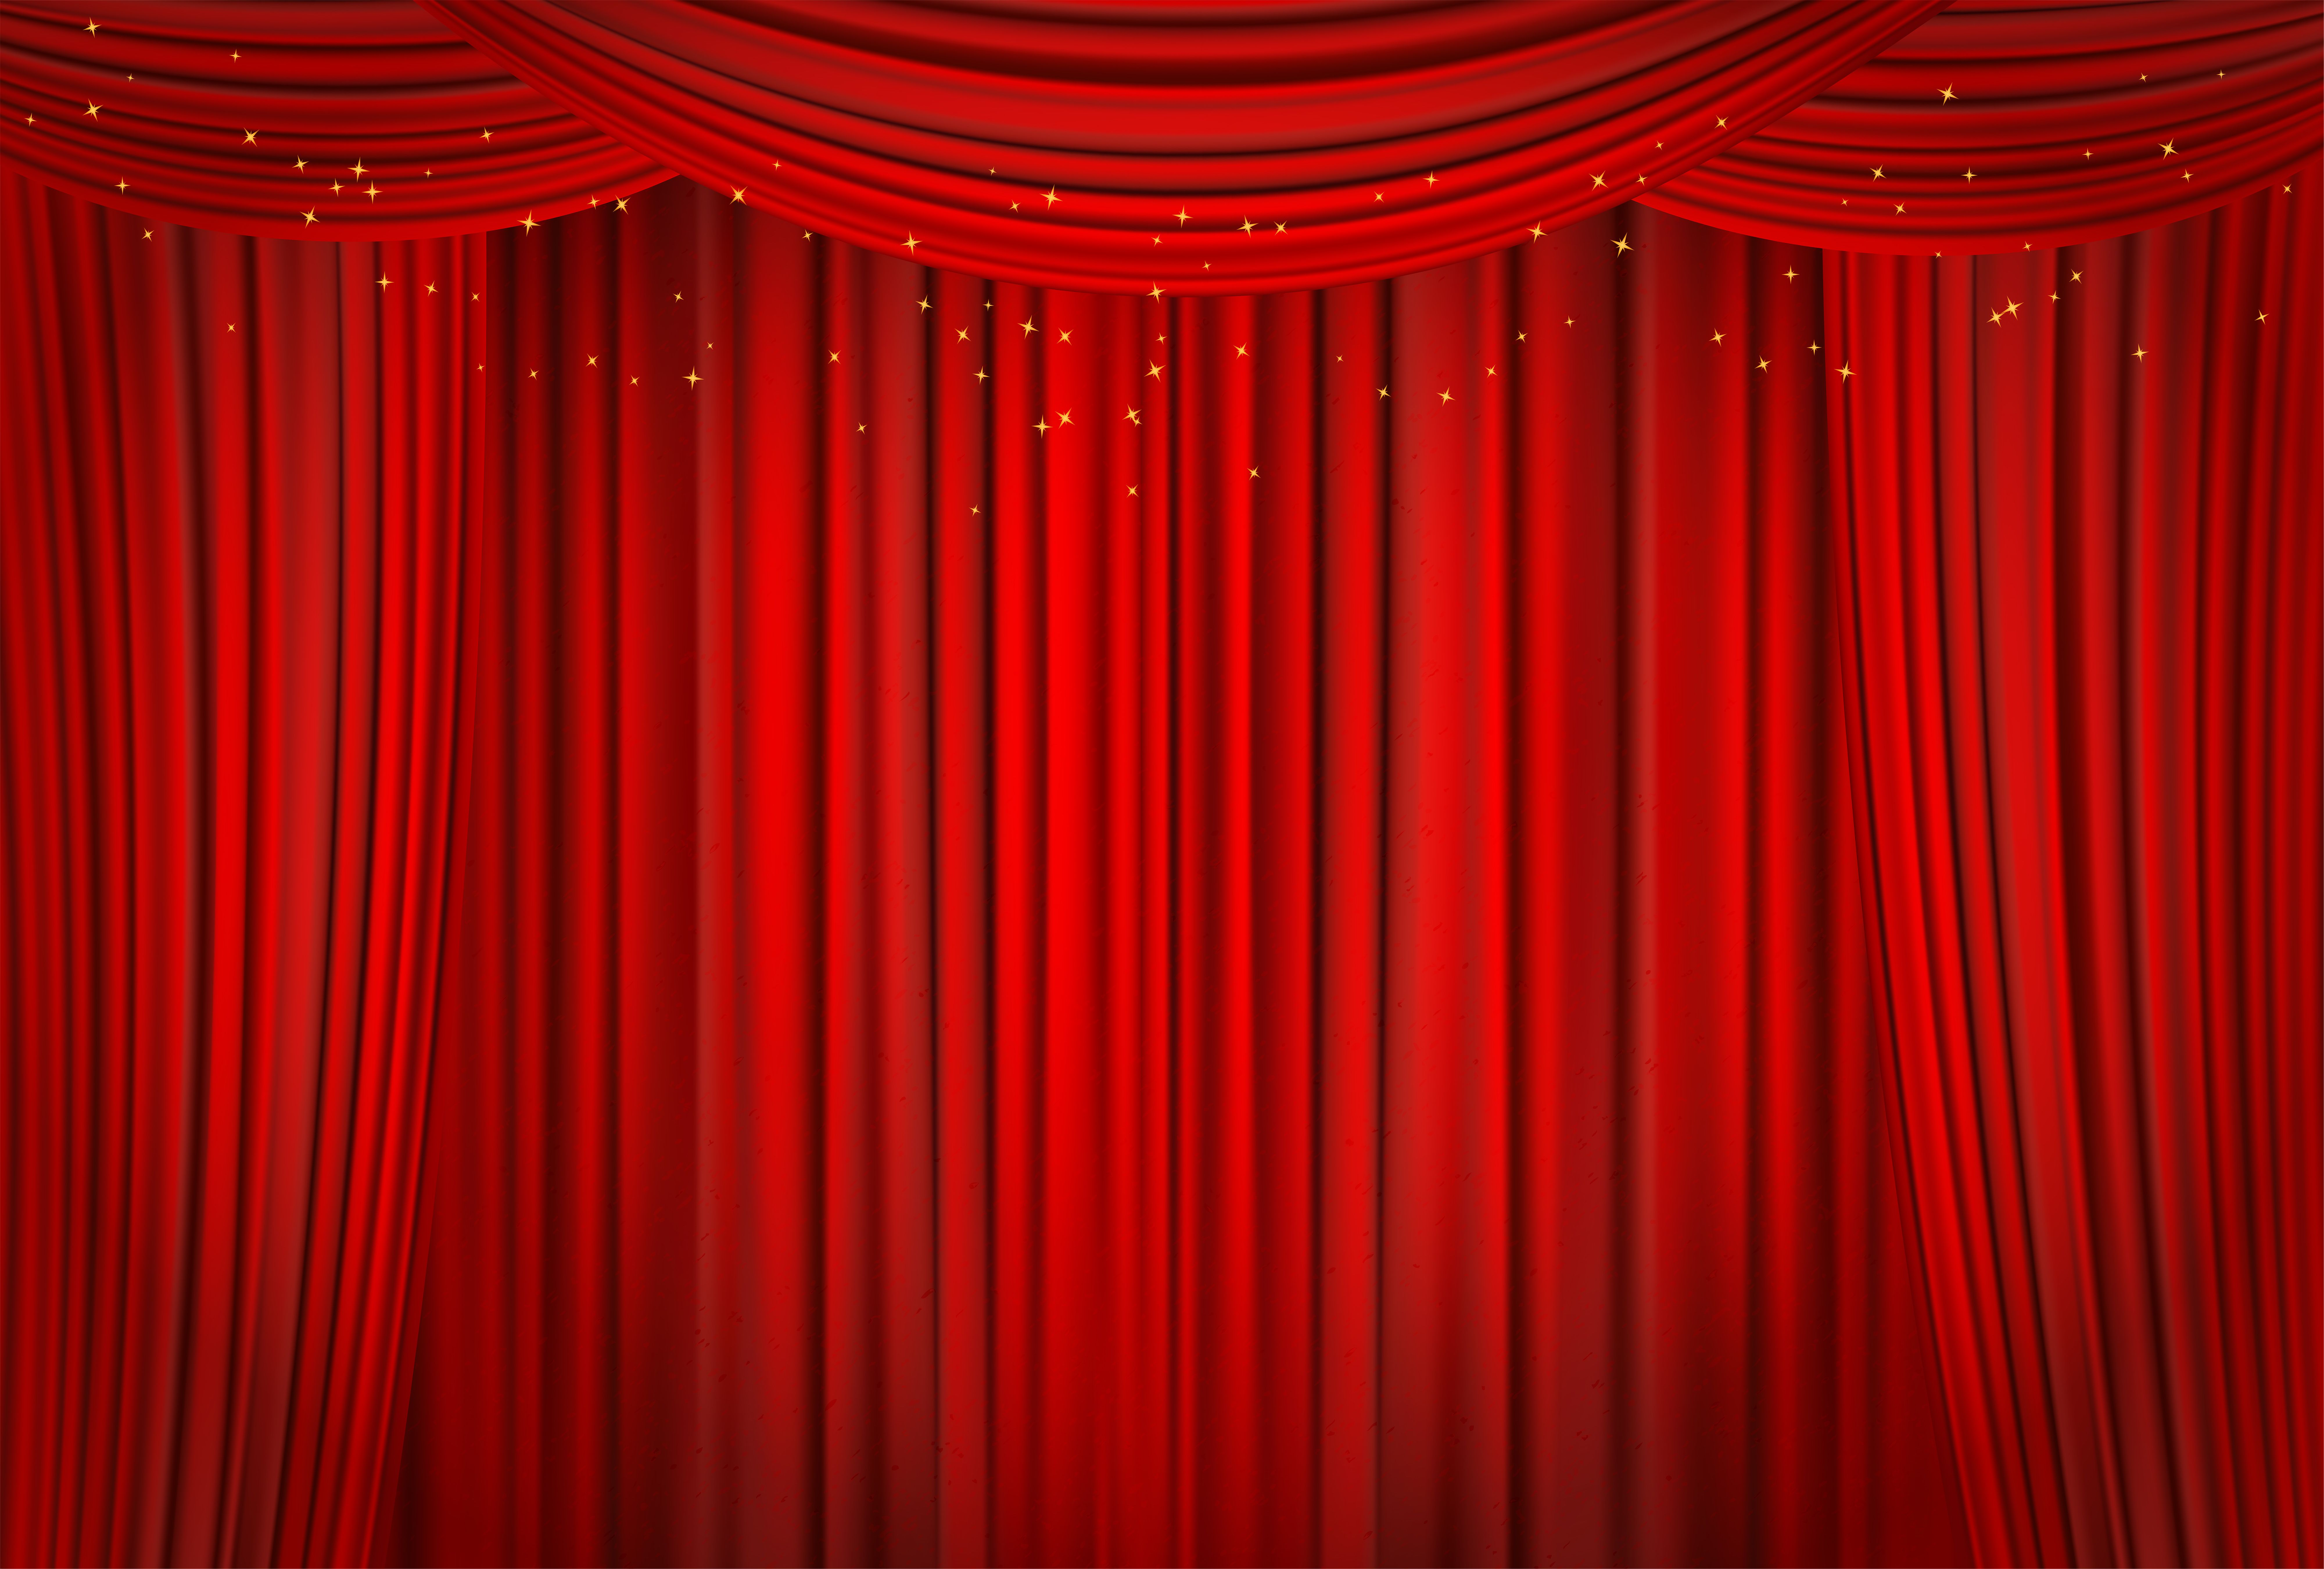 Curtains Red Background Gallery Yopriceville High Quality